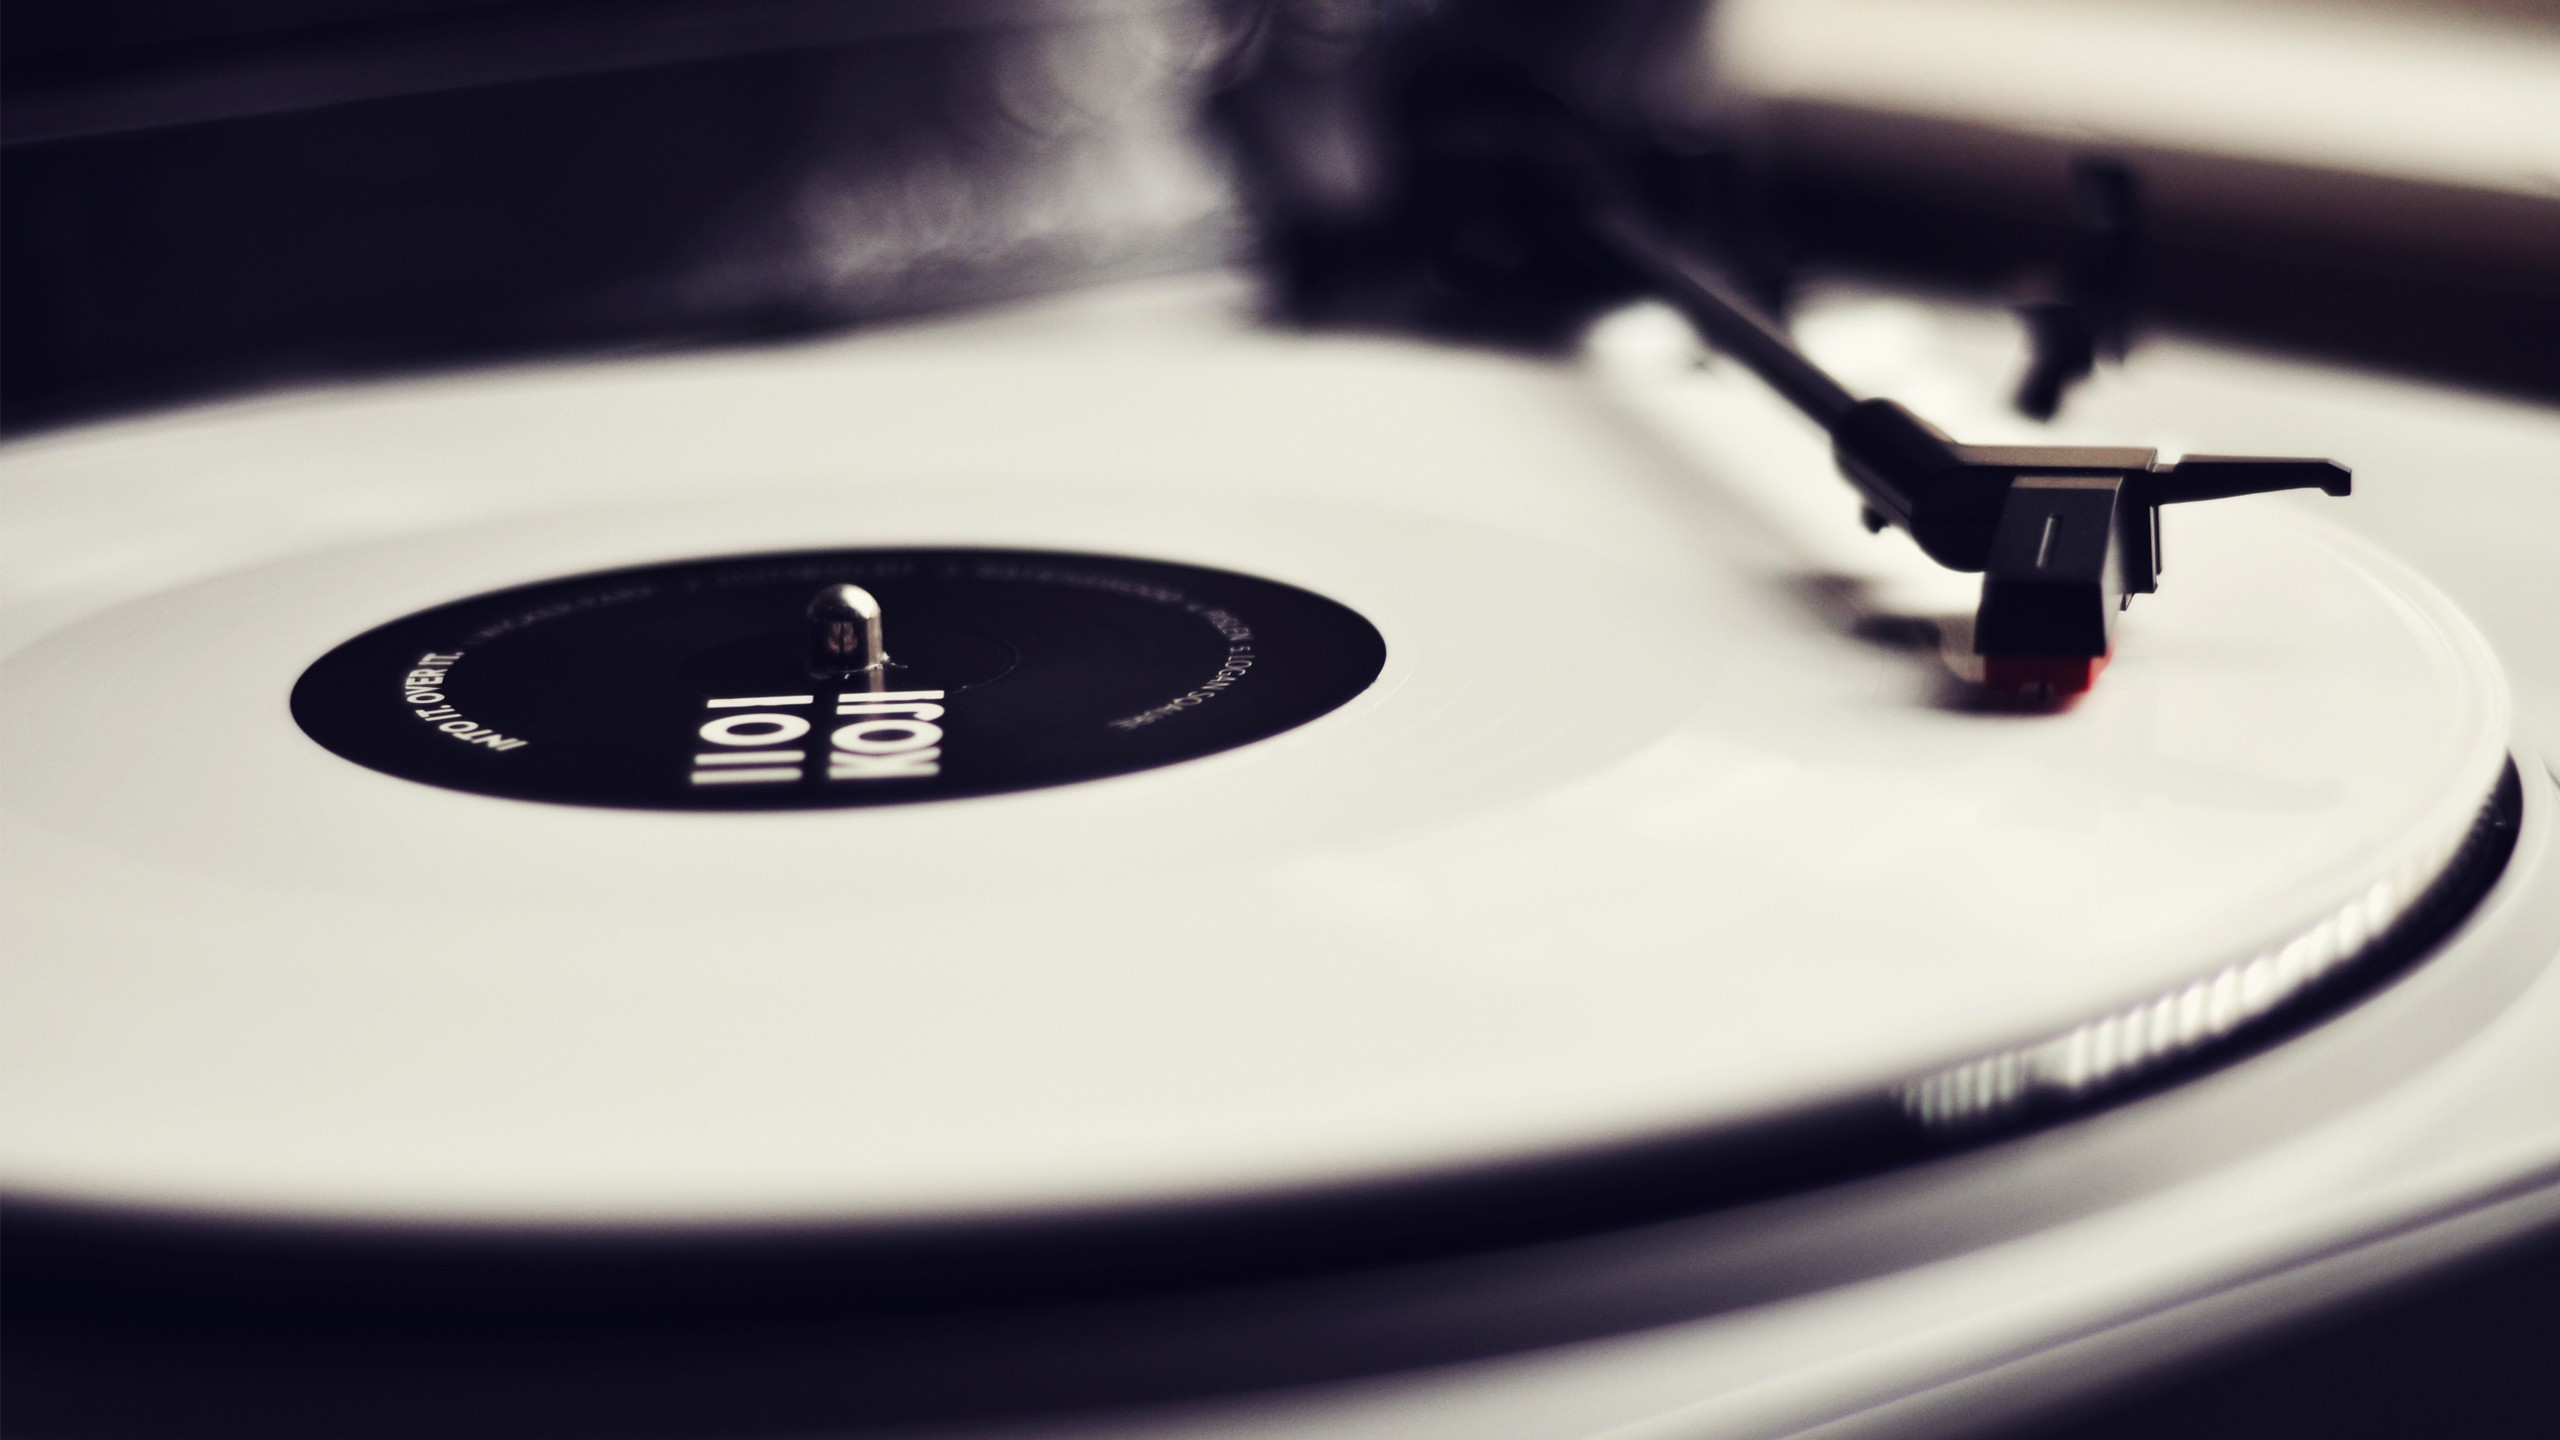 Vinyl Record Wallpaper 2560x1440 Vinyl Record Player Monochrome 2560x1440